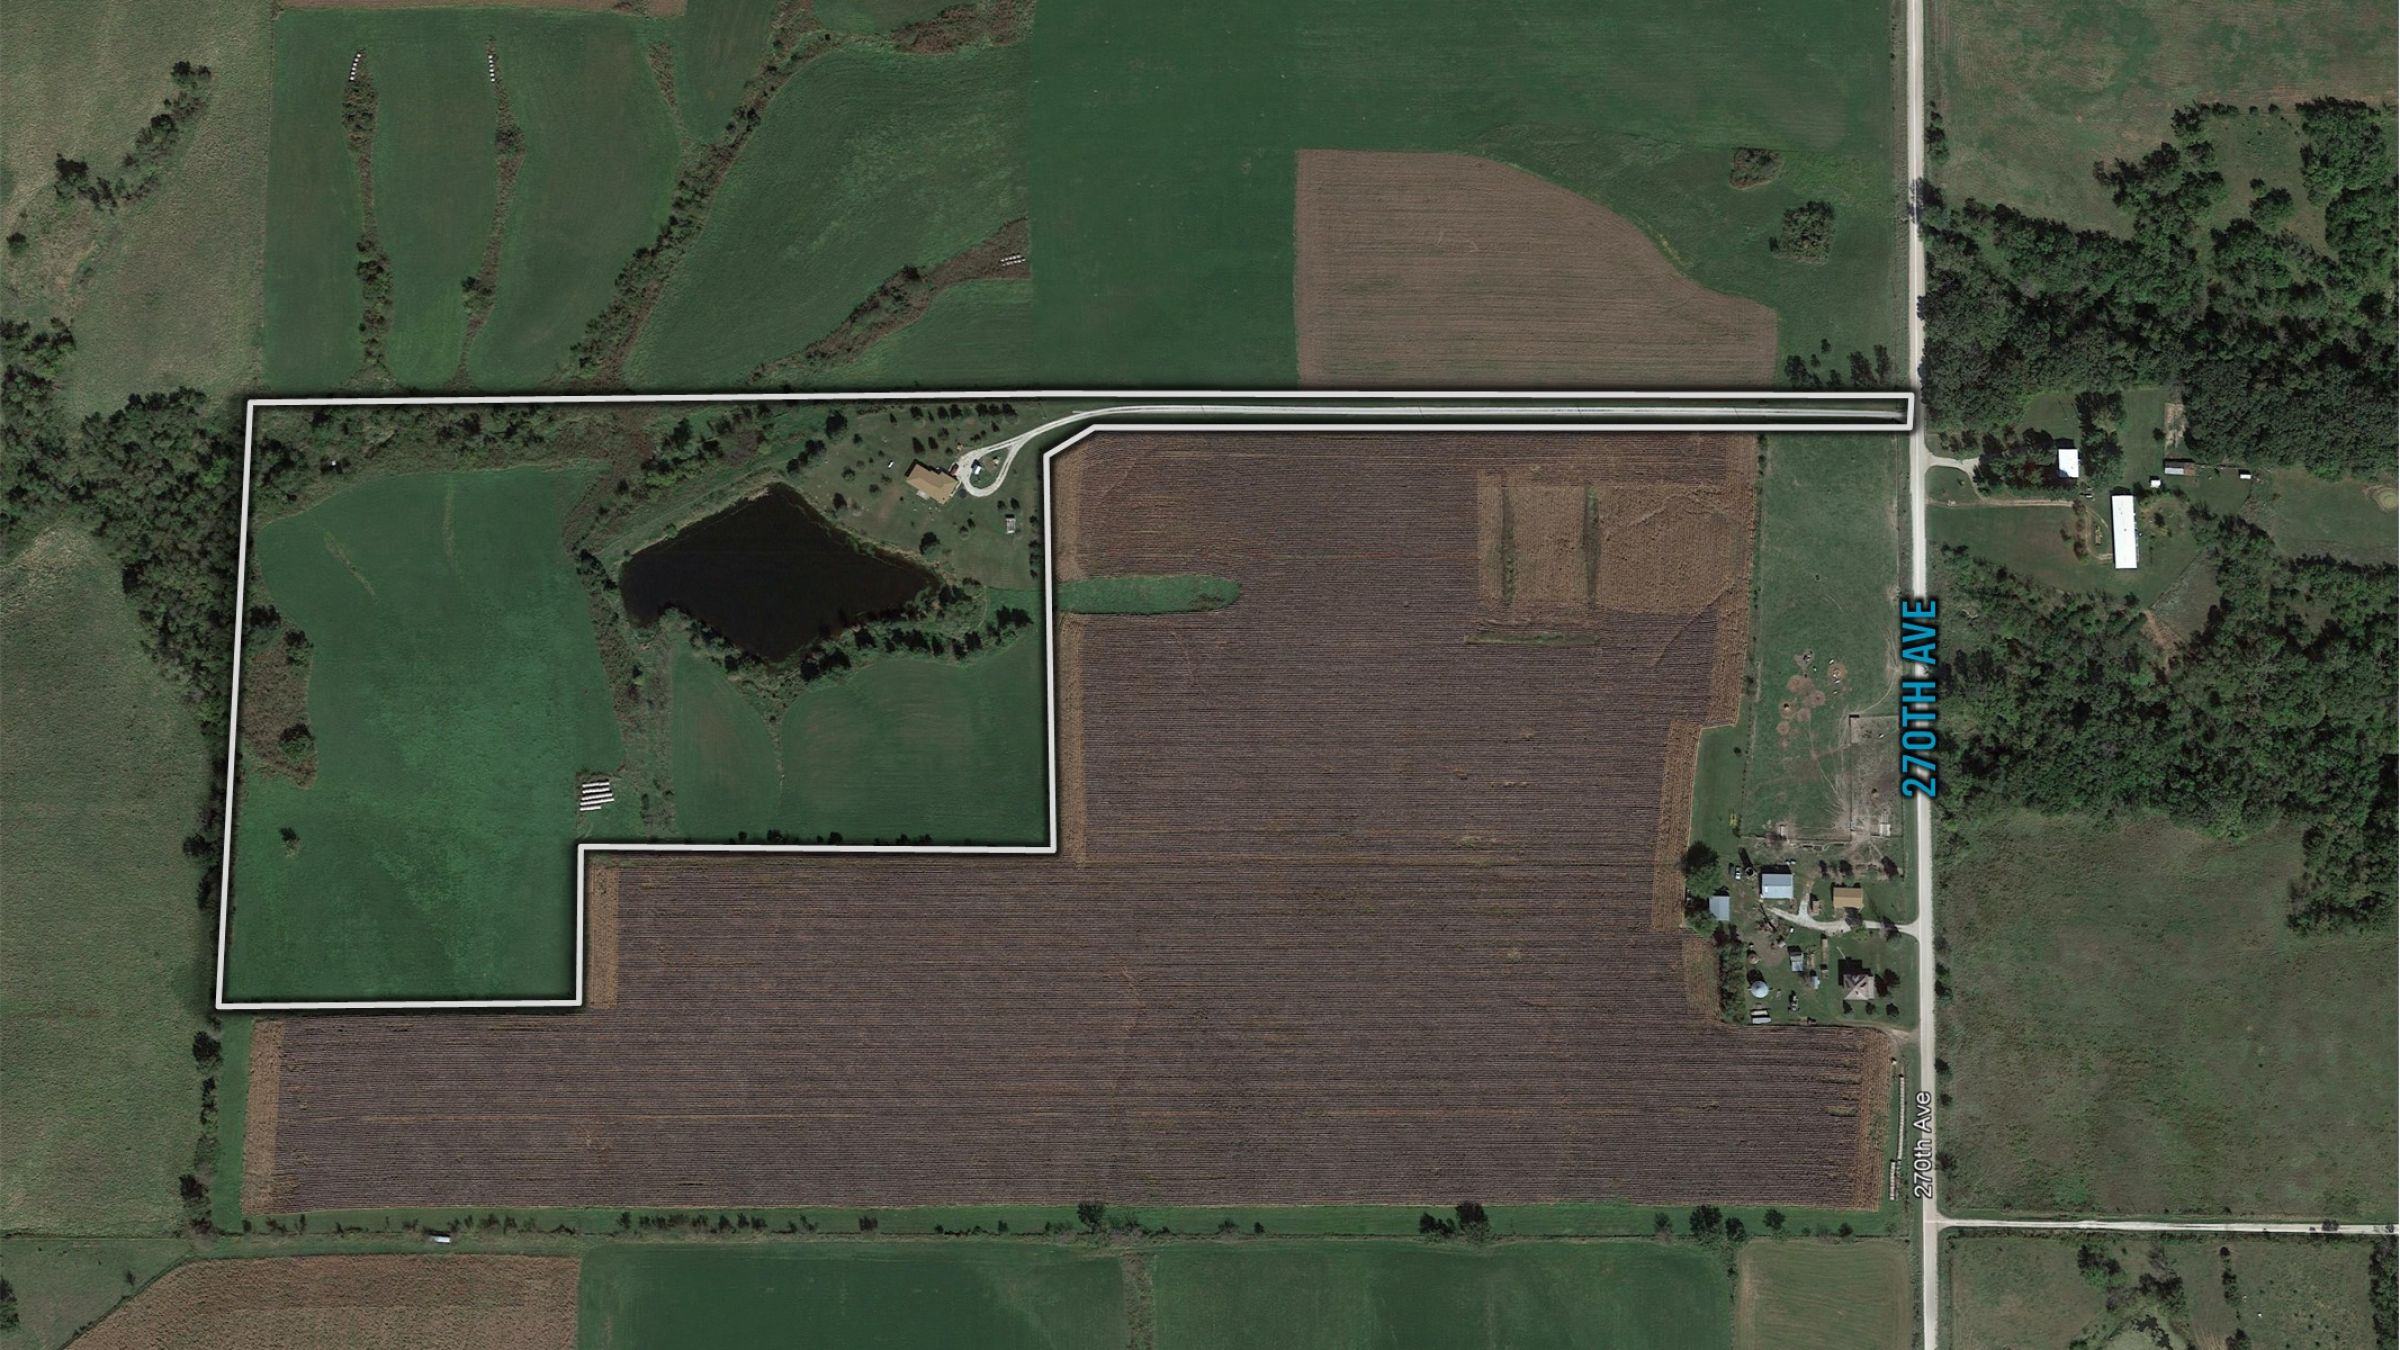 residential-land-lucas-county-iowa-25-acres-listing-number-15402-0-2021-03-10-031515.jpg